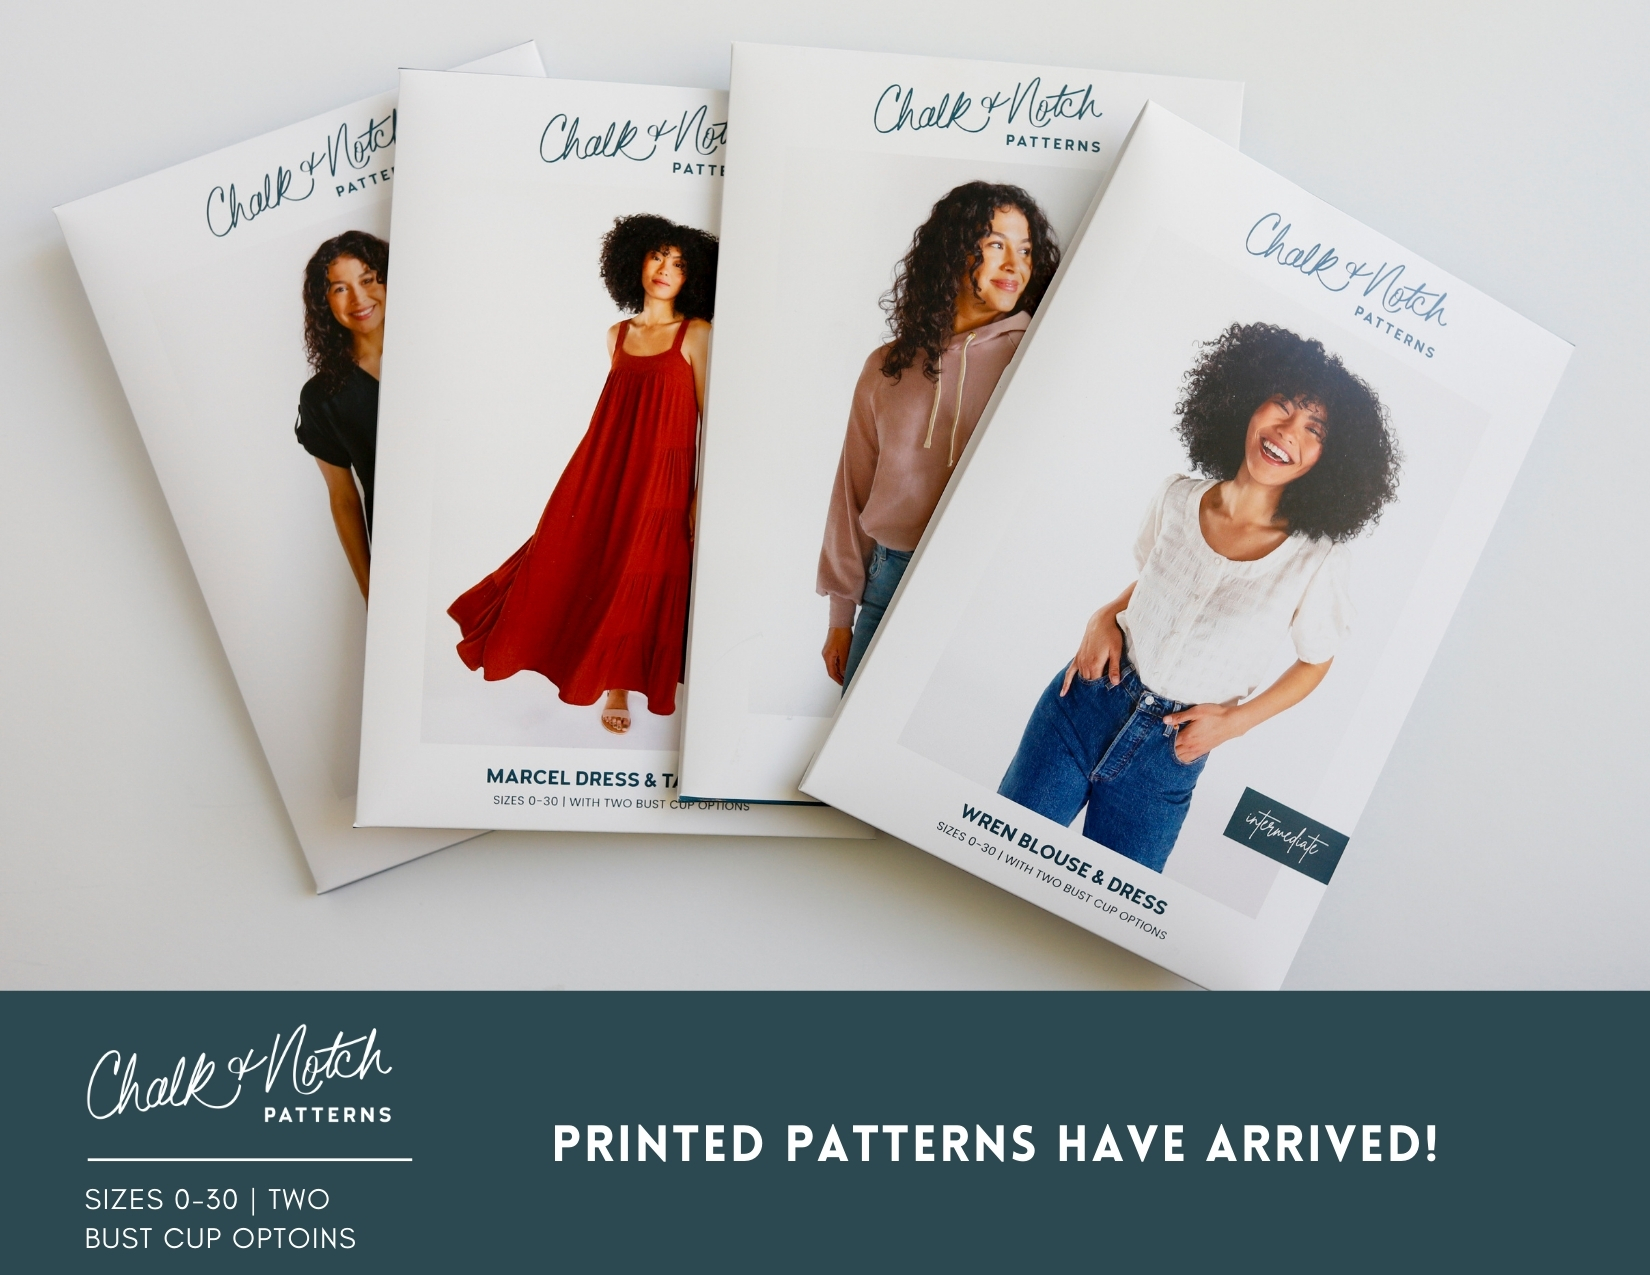 A flat lay of the envelopes of four printed sewing patterns.